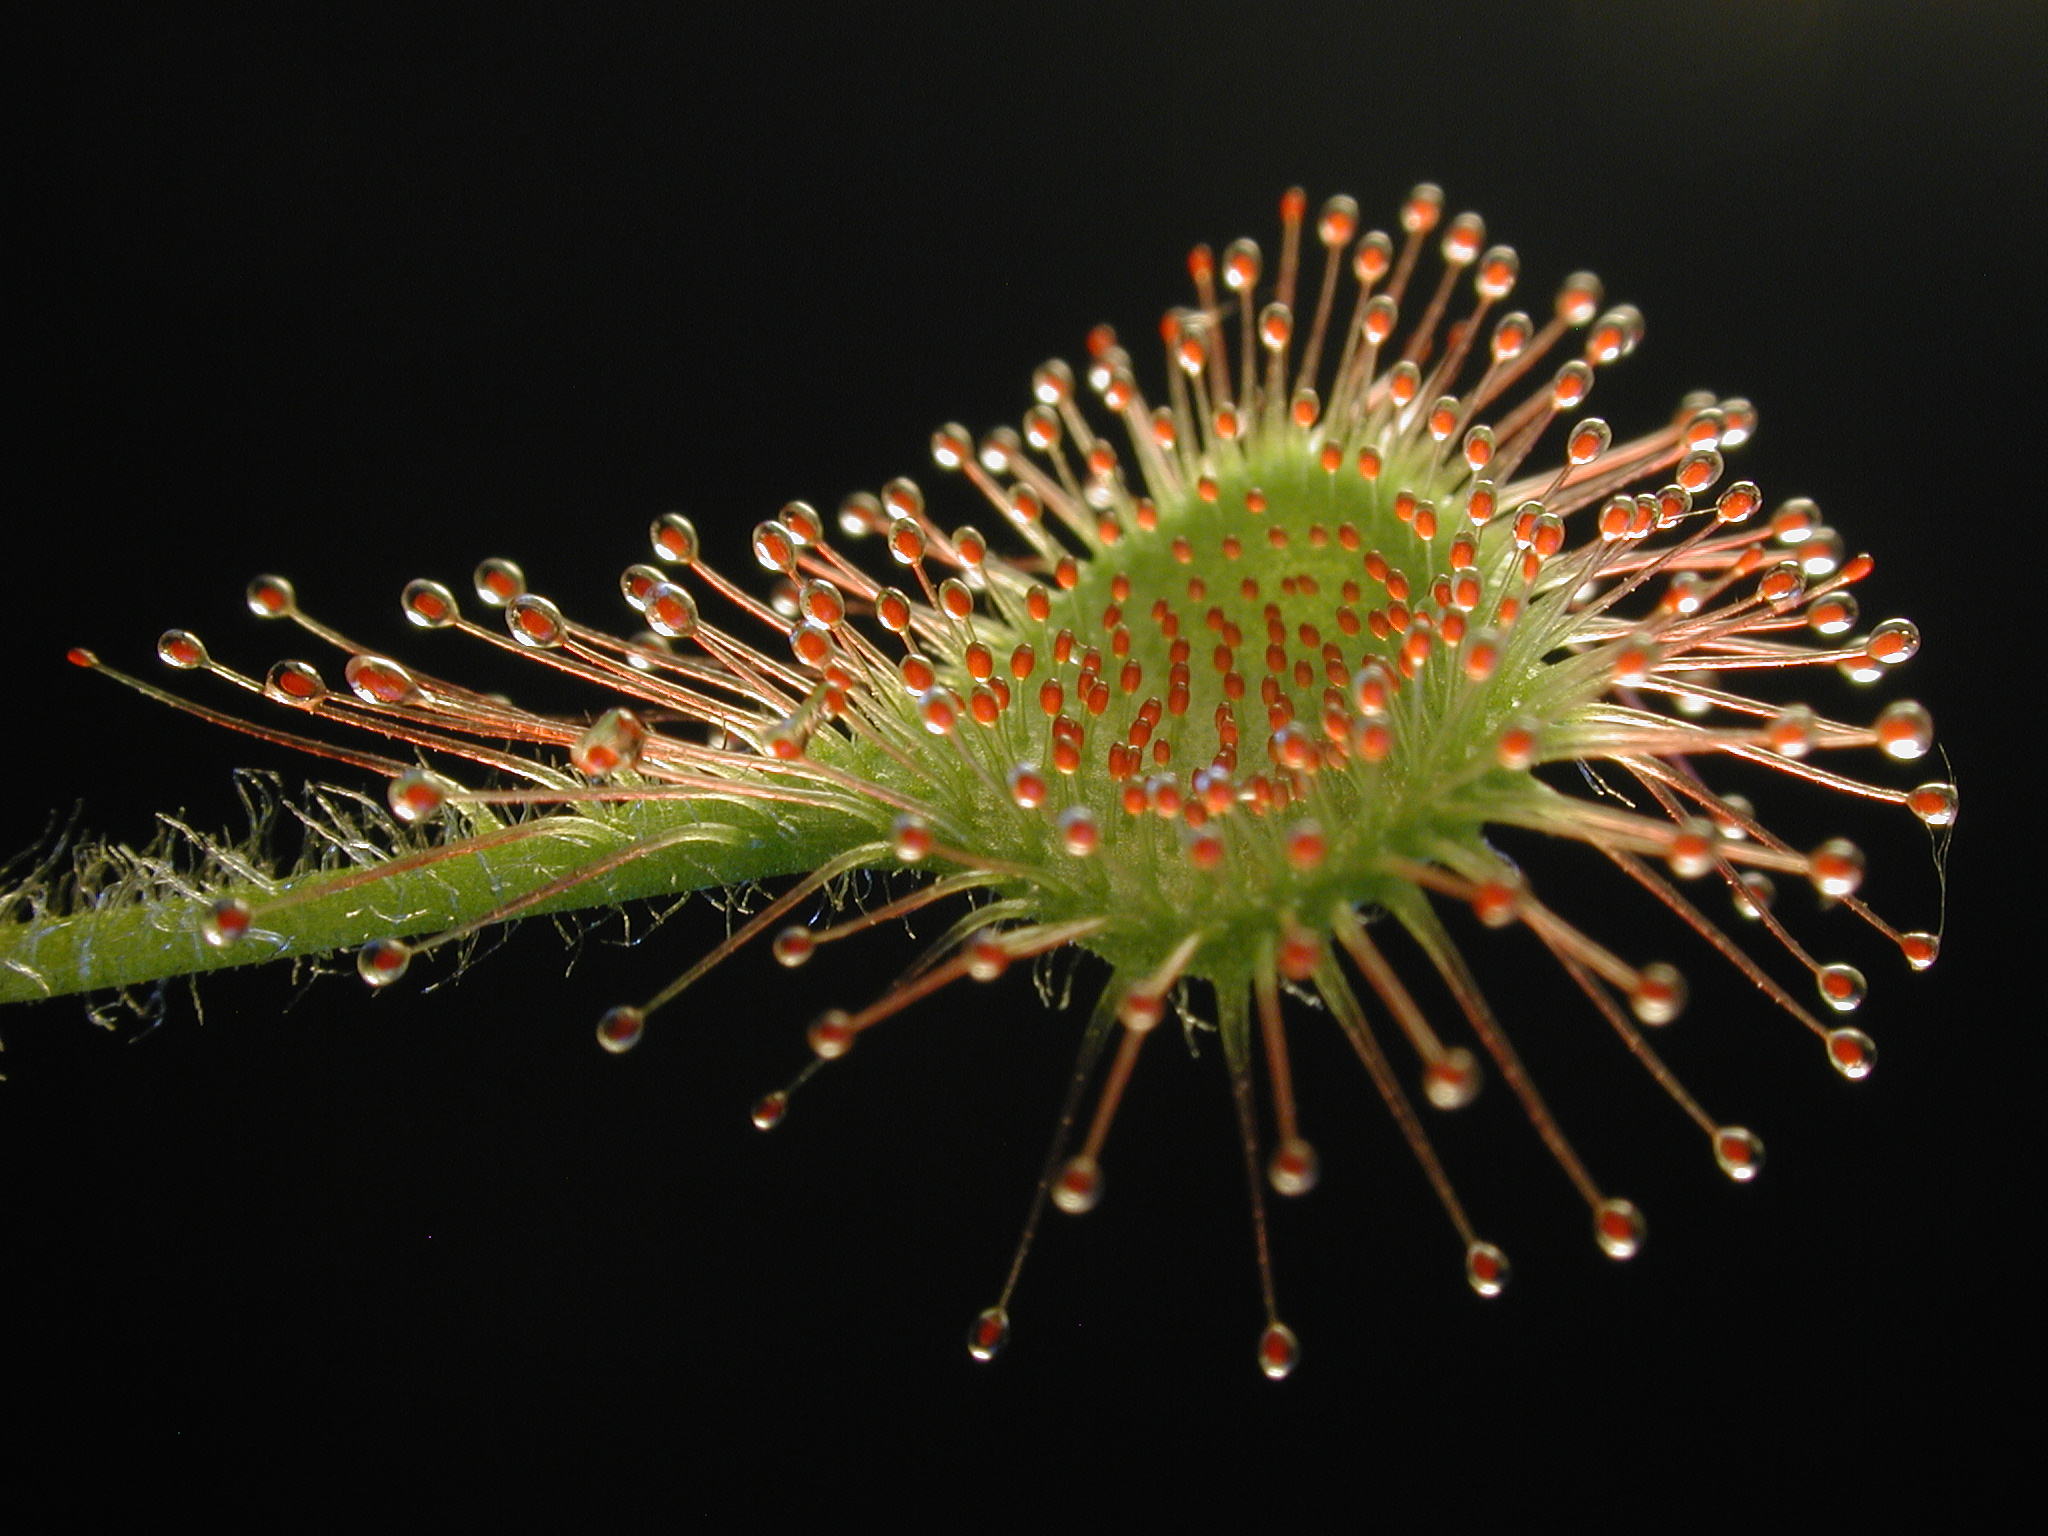 Drosera_rotundifolia_leaf1